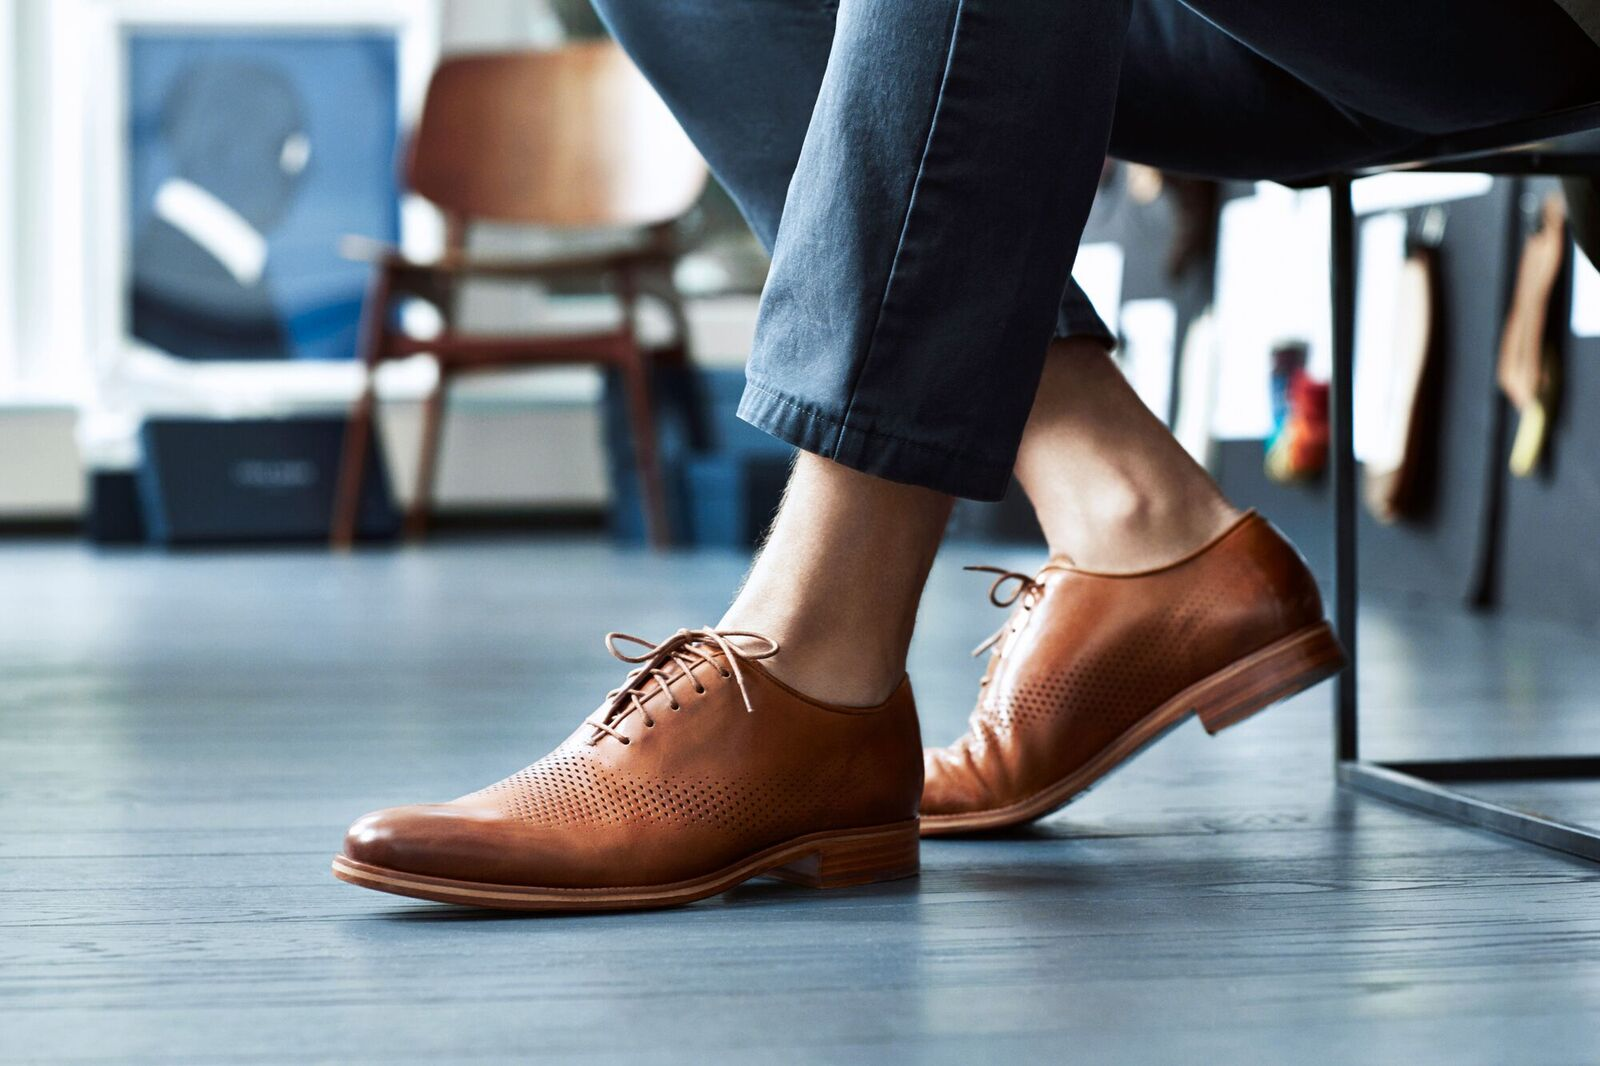 ... gotten used to a level of comfort previously only available in athletic  shoes. Last week, iconic American lifestyle footwear brand Cole Haan  launches a ...